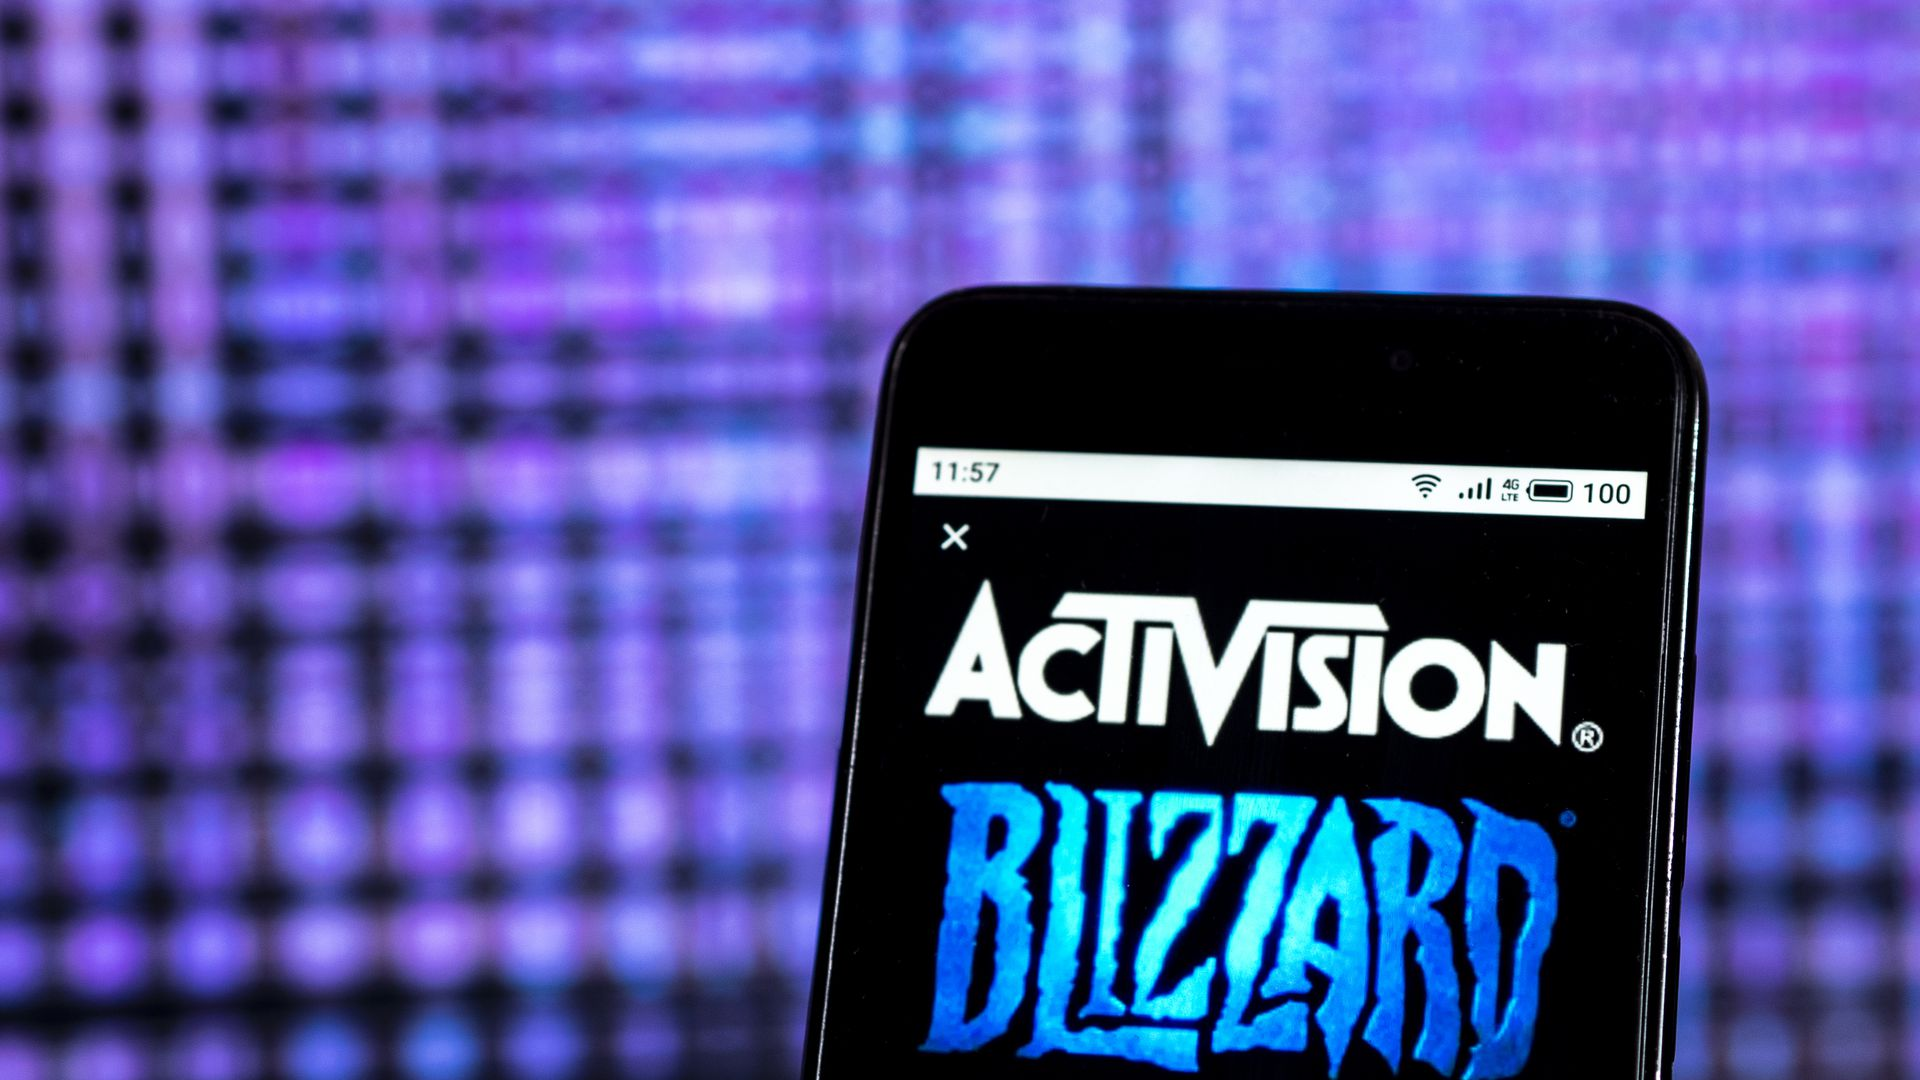 California updates lawsuit against Activision Blizzard, says game maker is interfering - Axios